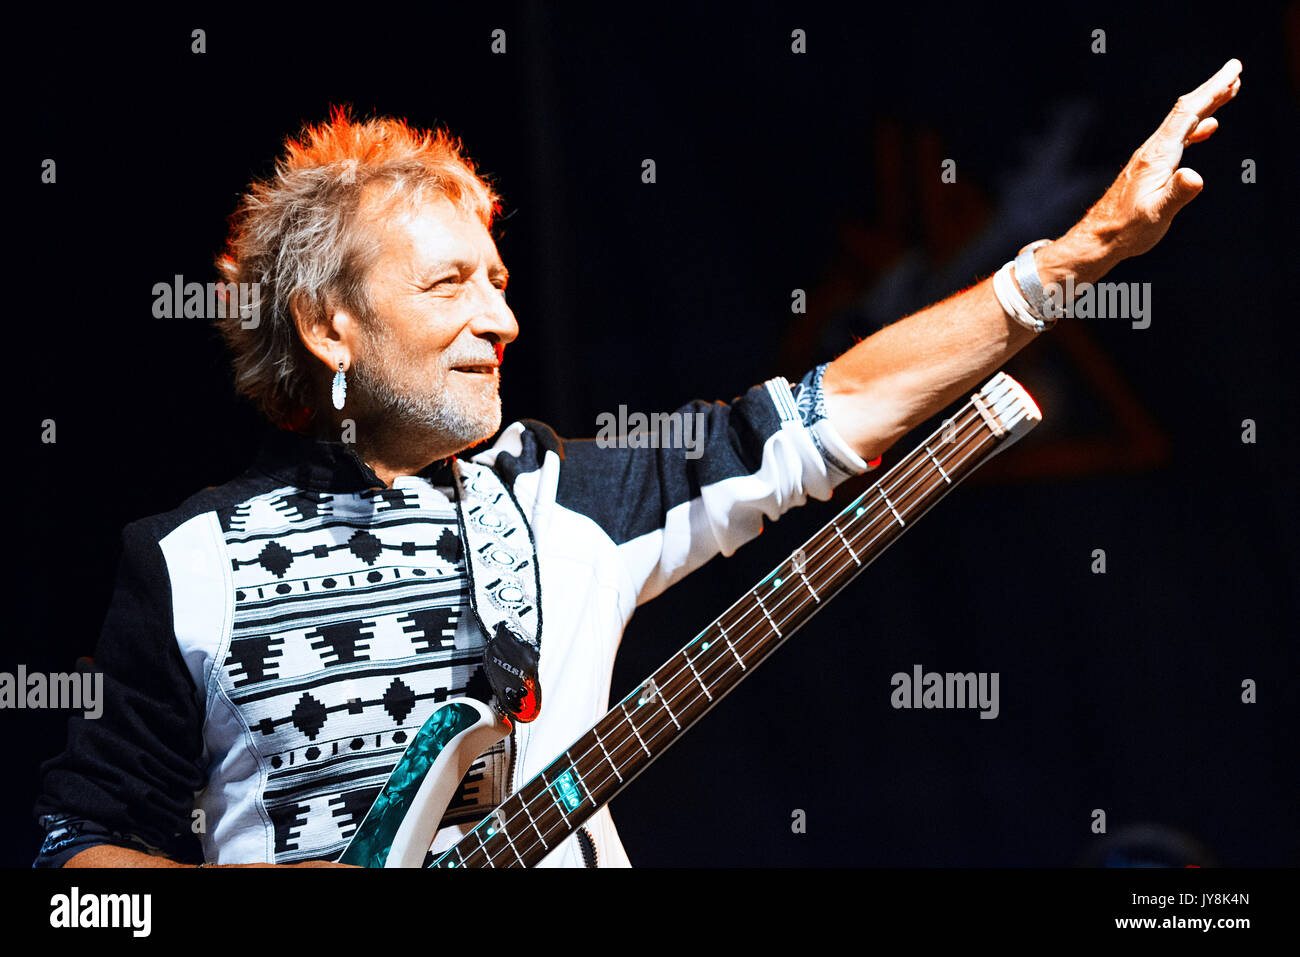 Vasco Rossi 1988 Golinelli Stock Photos And Golinelli Stock Images Alamy